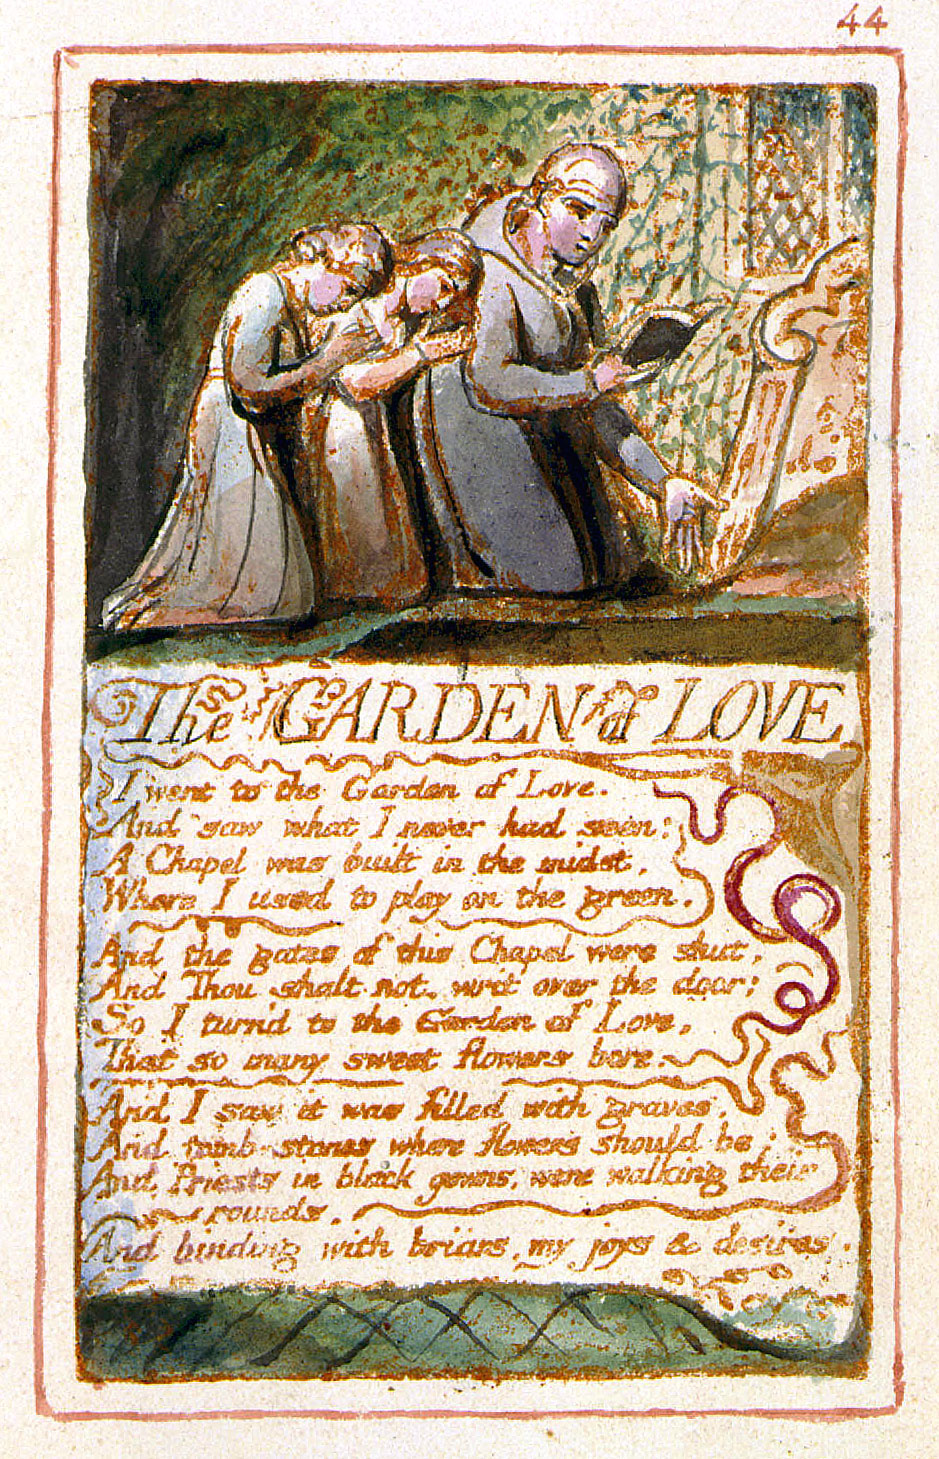 an analysis of the garden of love The garden of love: a venture into a poet's past of promiscuity titles of poems are often derived from actual content of the passage, though the title itself may not reflect the poem's tone and meaning.